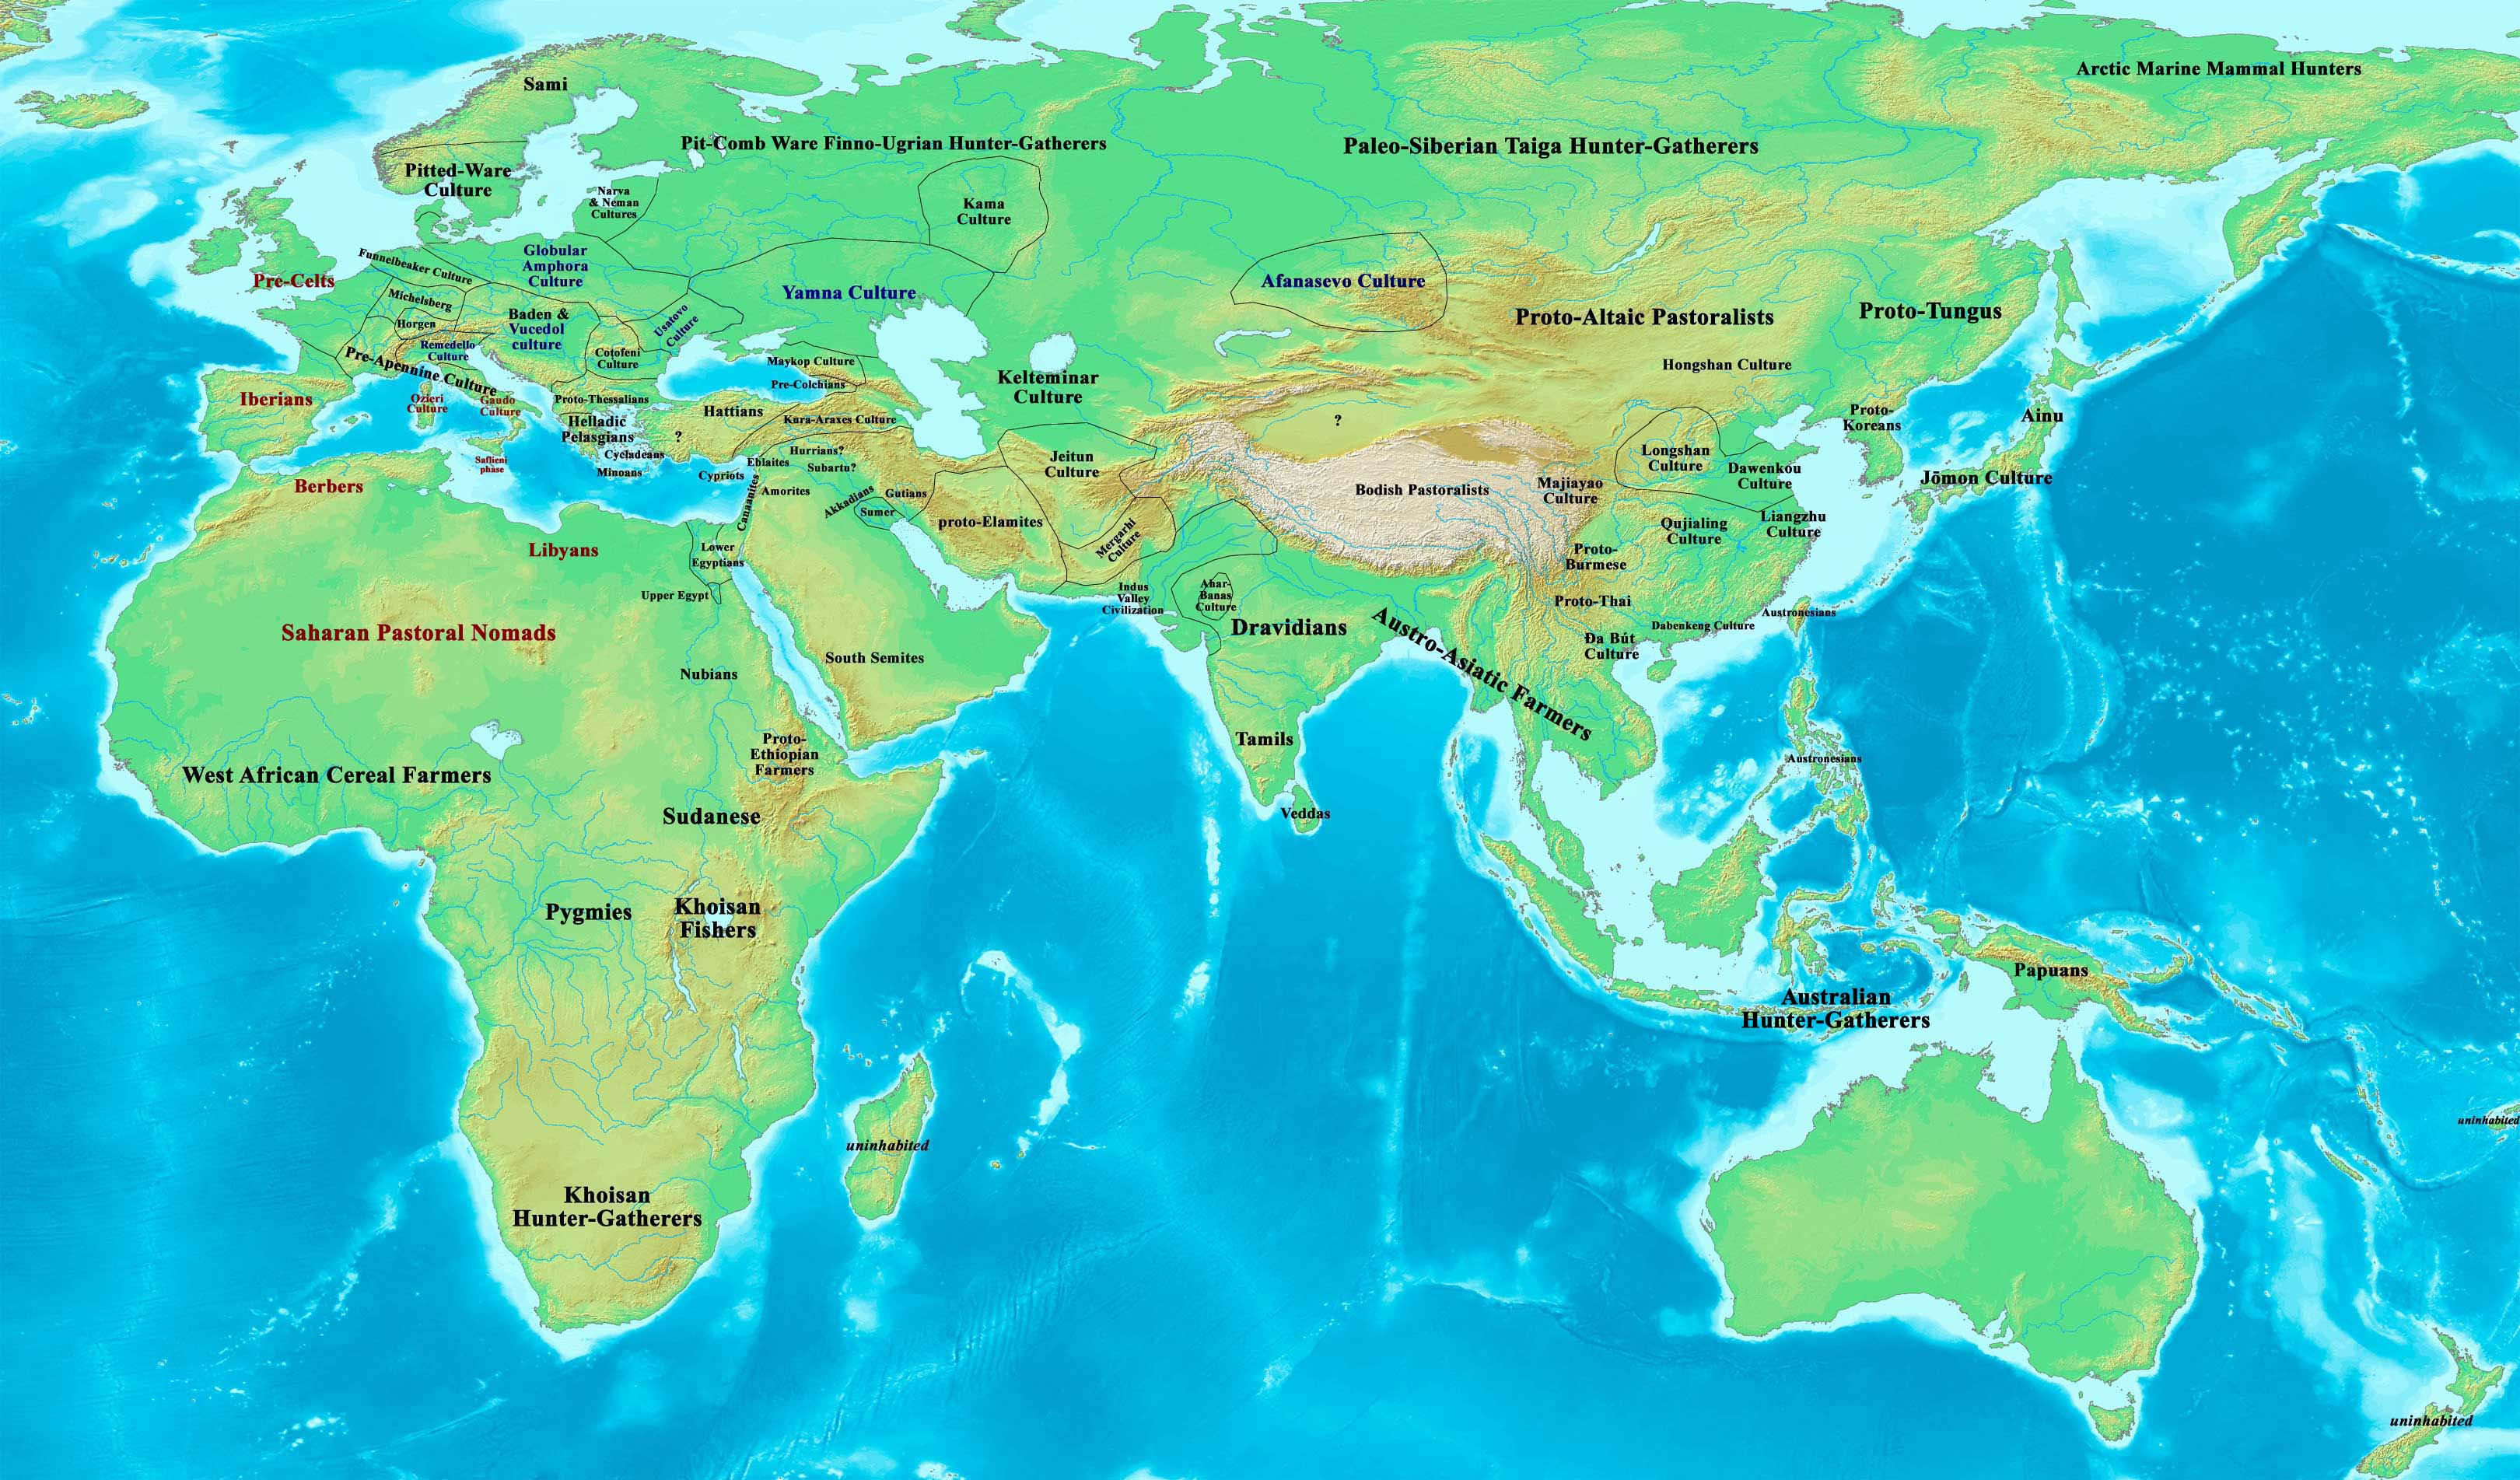 Old World Reference Map BC By OneHellofaBird On DeviantArt - Map of egypt 3000 bc